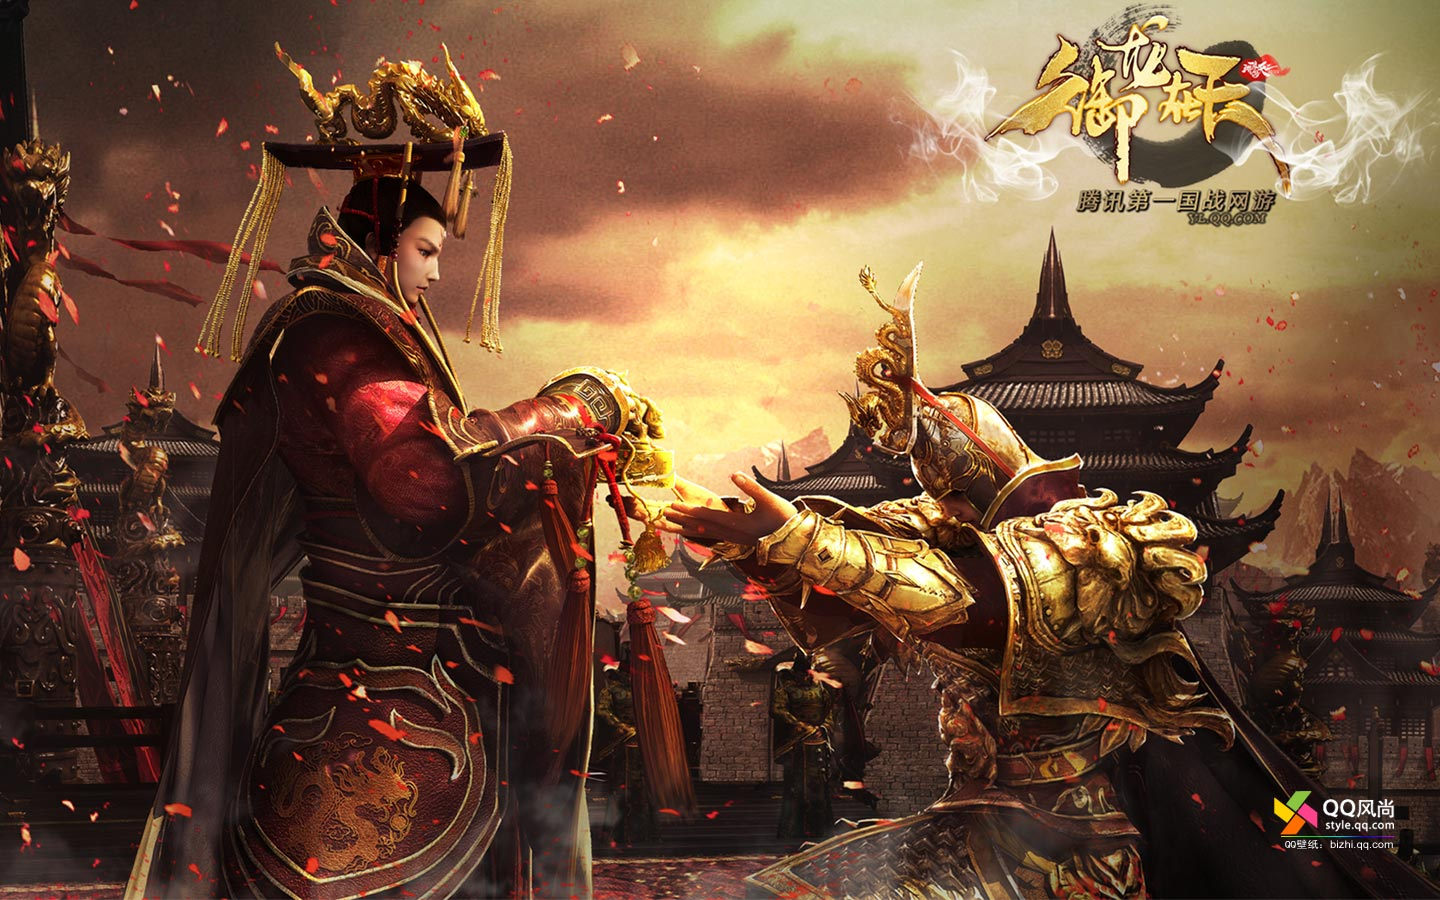 Dragon in the days of the official wallpaper 30134